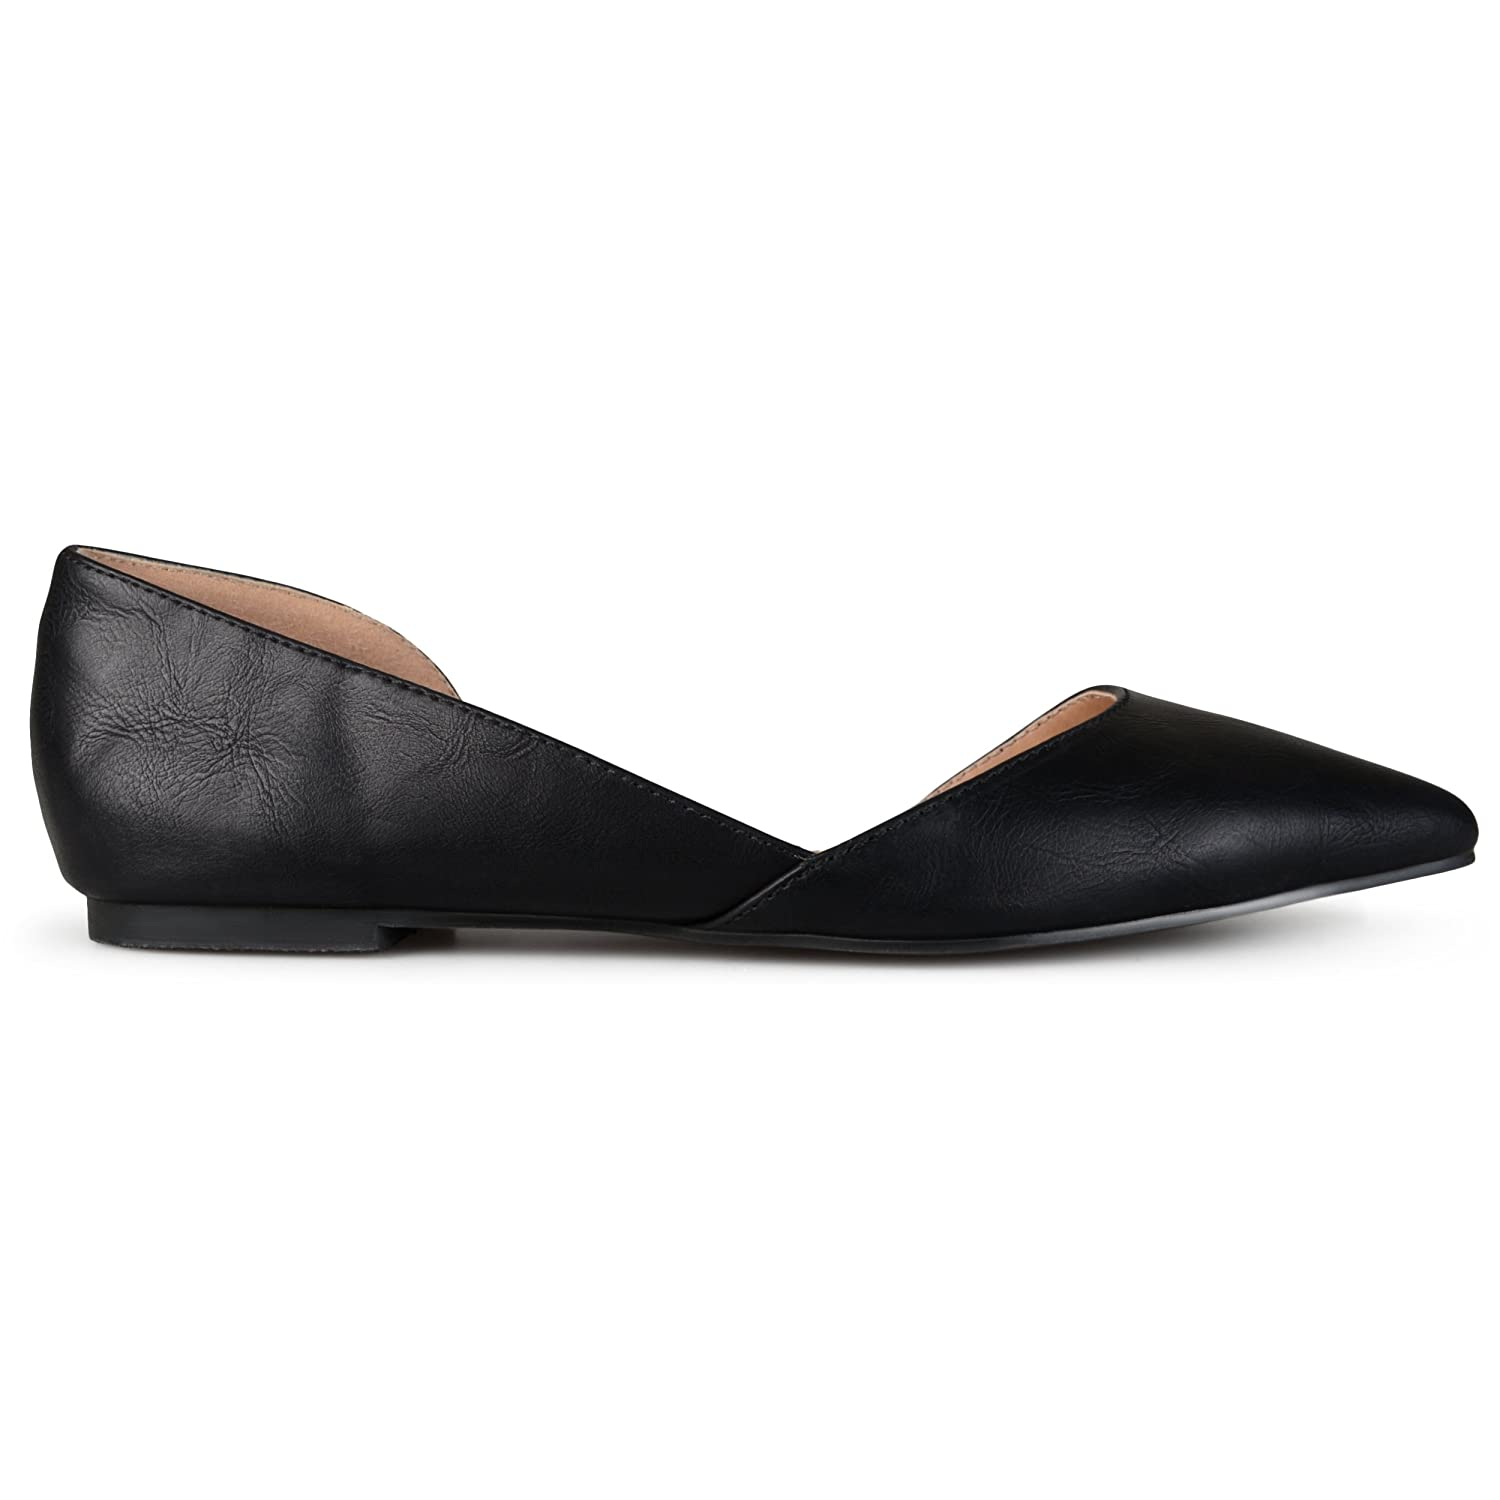 Brinley Co. Womens D'Orsay Cut-out Pointed Toe Fashion Flats Black 7